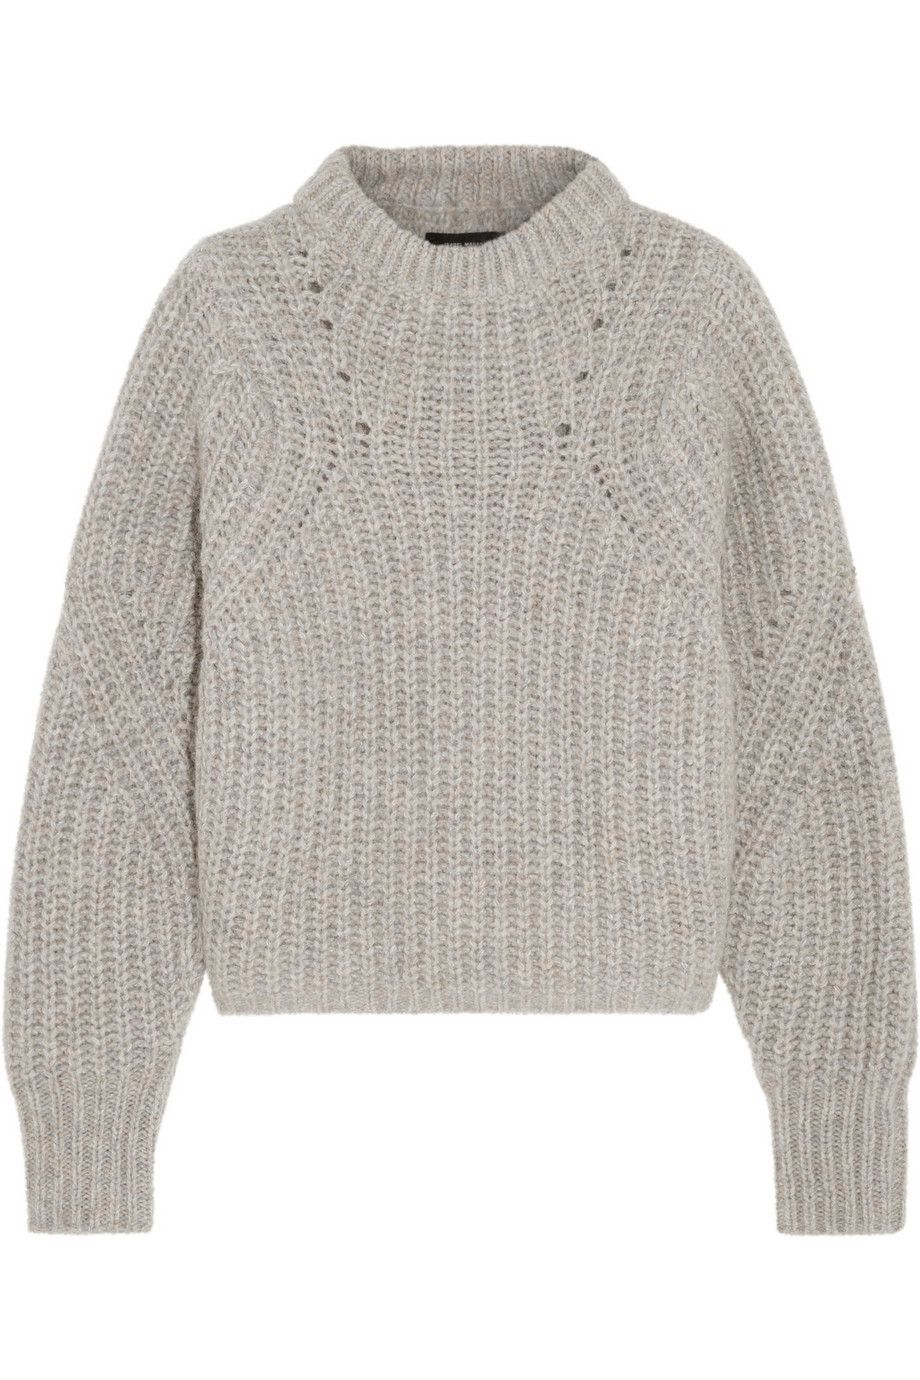 Isabel Marant | Newt oversized mélange ribbed-knit sweater | NET-A ...